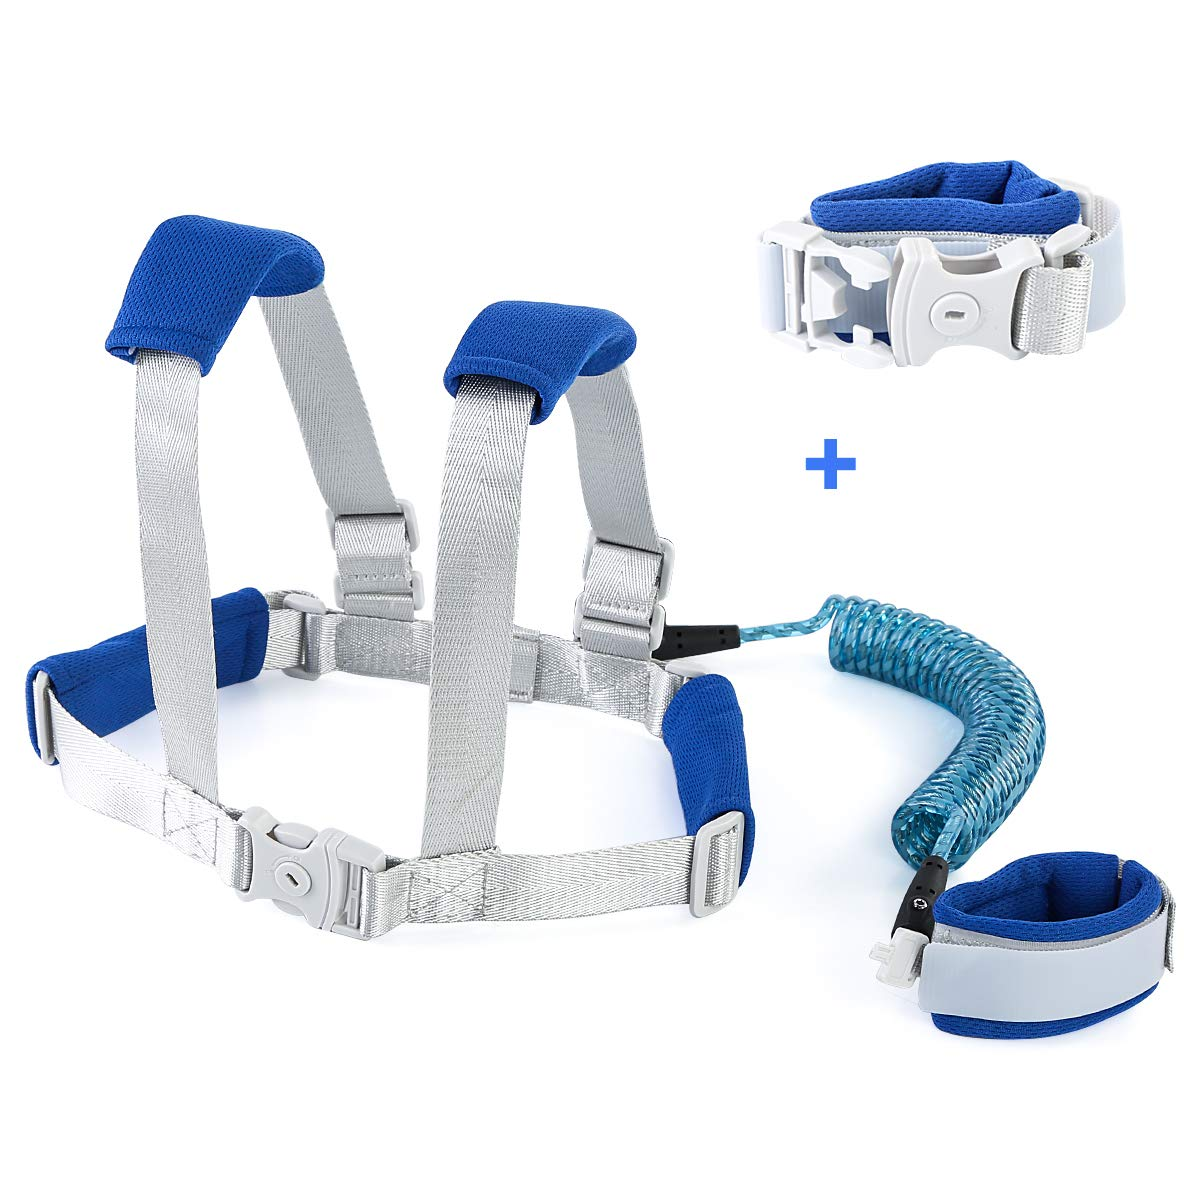 Owlike Anti Lost Wrist Link for Toddler,Safety Wrist Link for Kids with Reflective Tape Anti Lost Harness for Baby Walking Safety Leash Blue